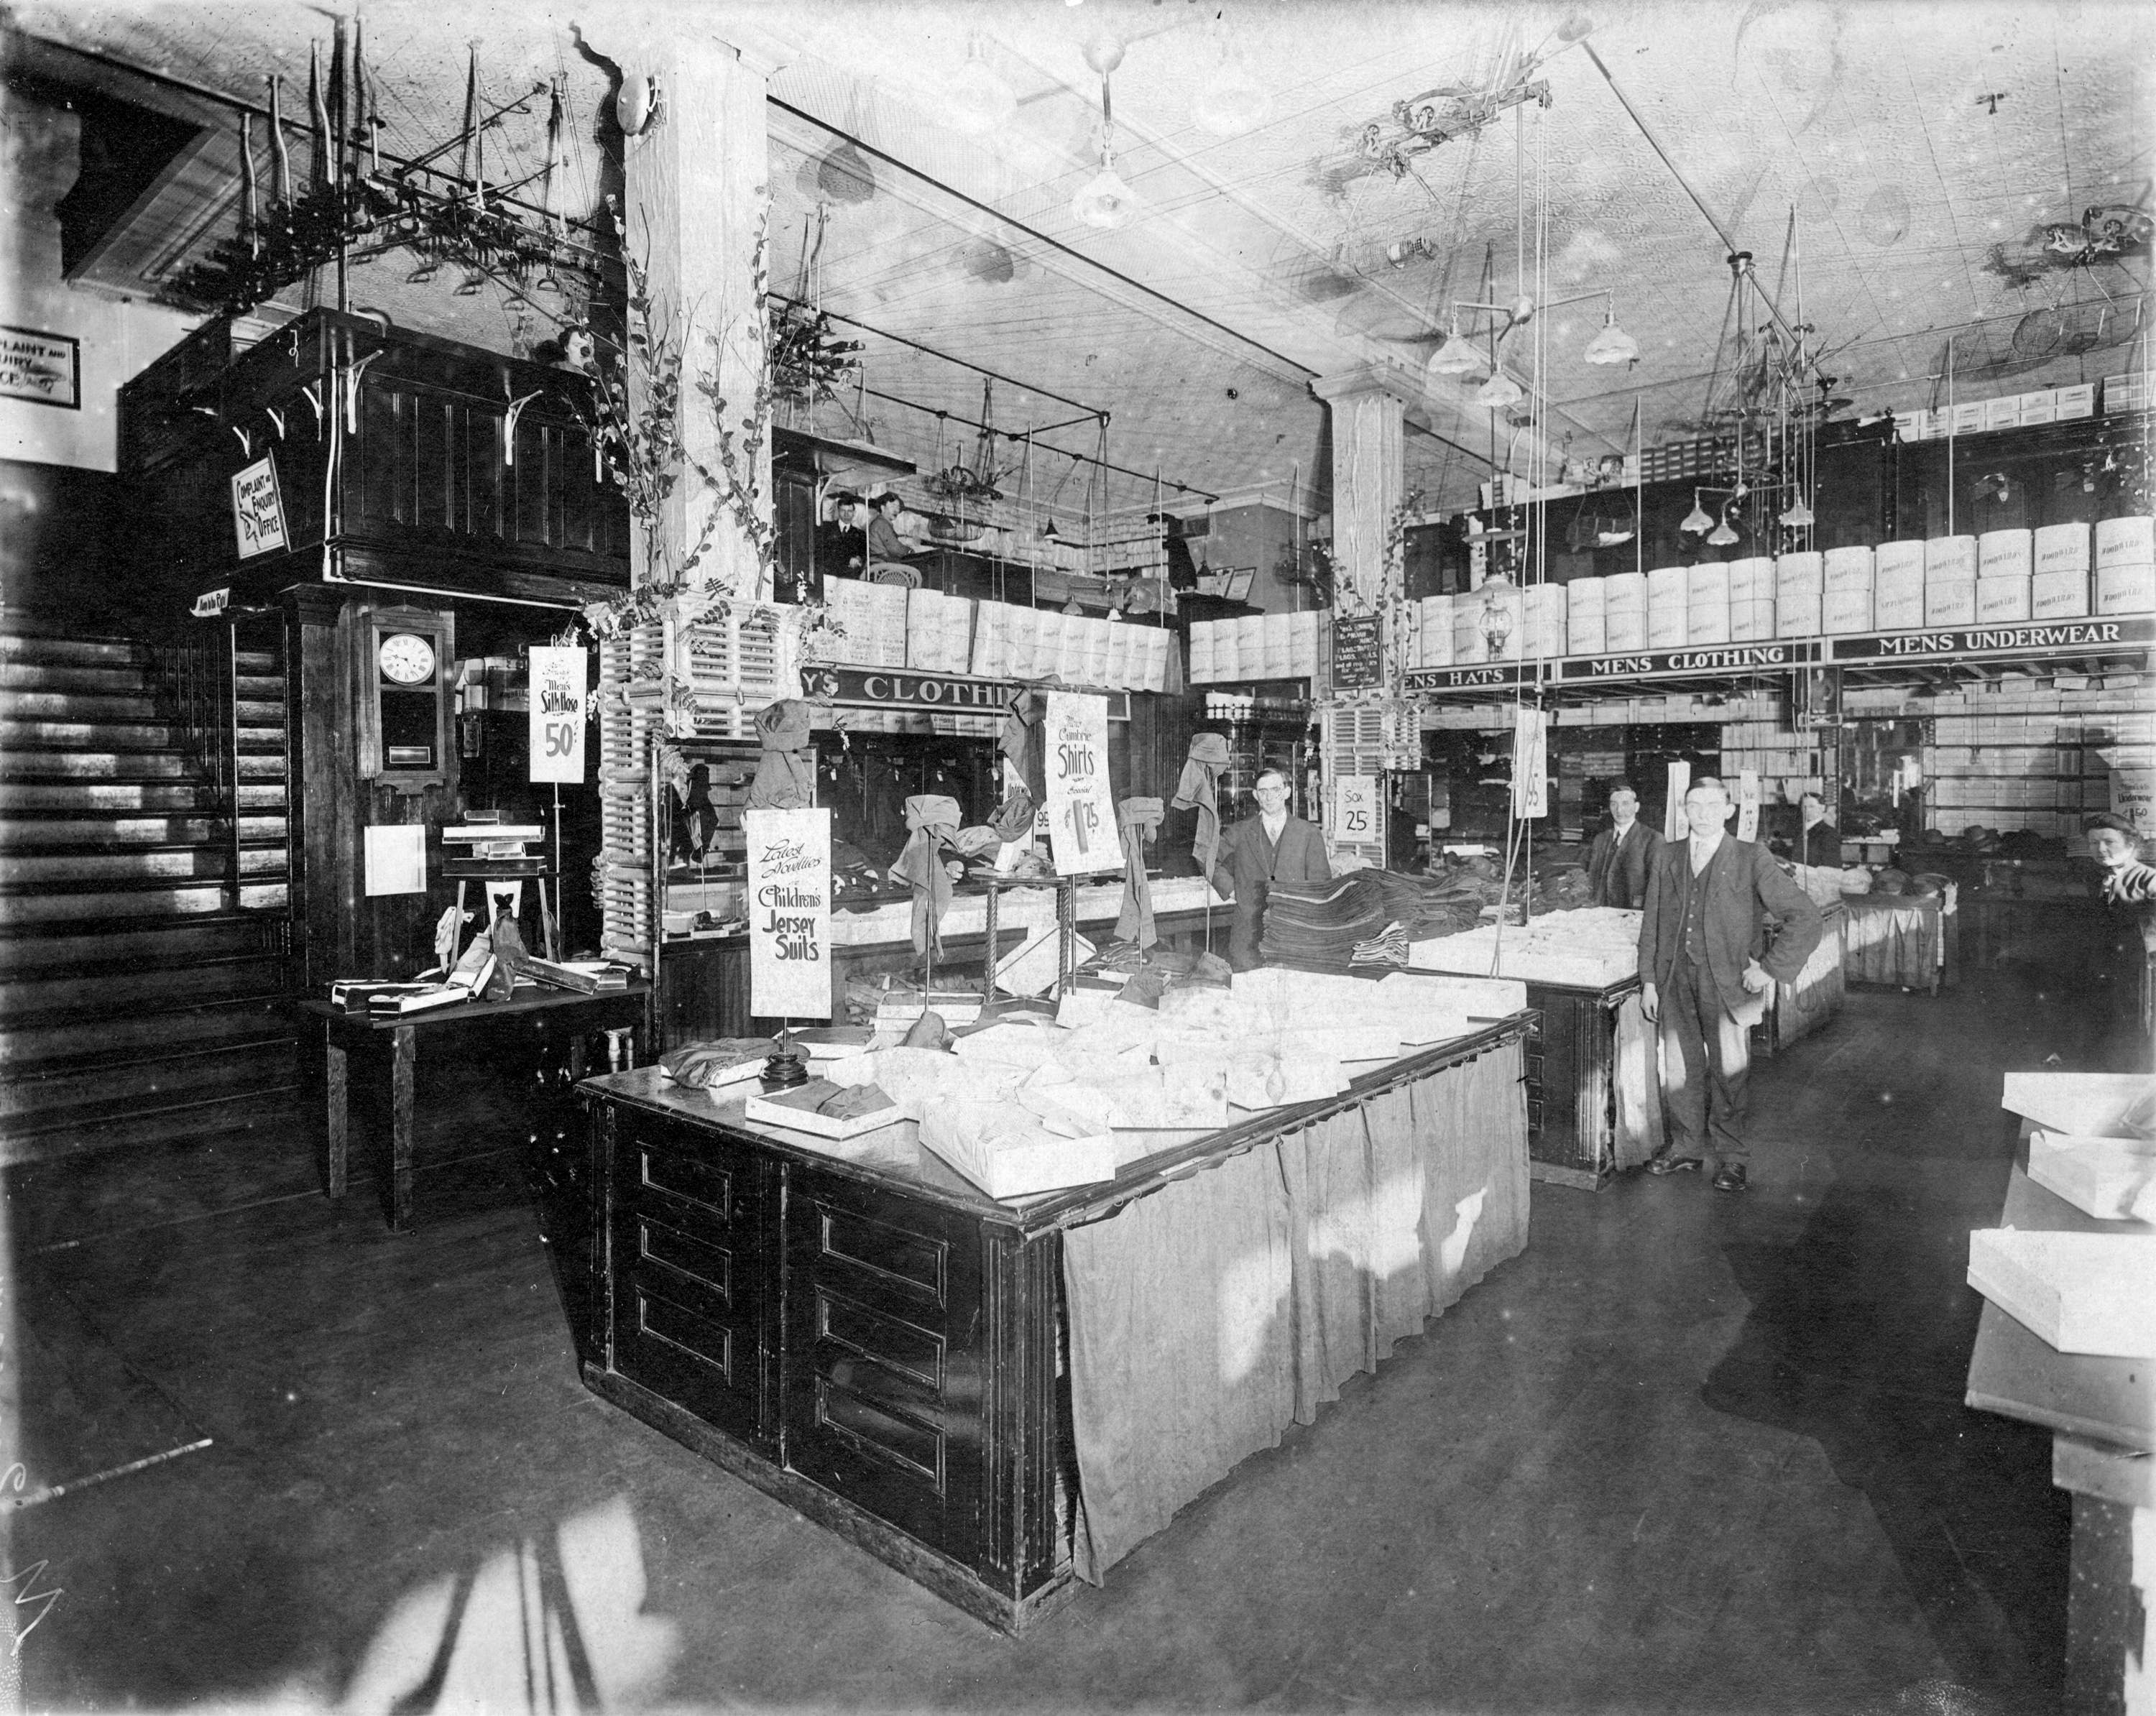 Inside the Woodward's mens' clothing department in 1905 (Woodward's Stores Limited)